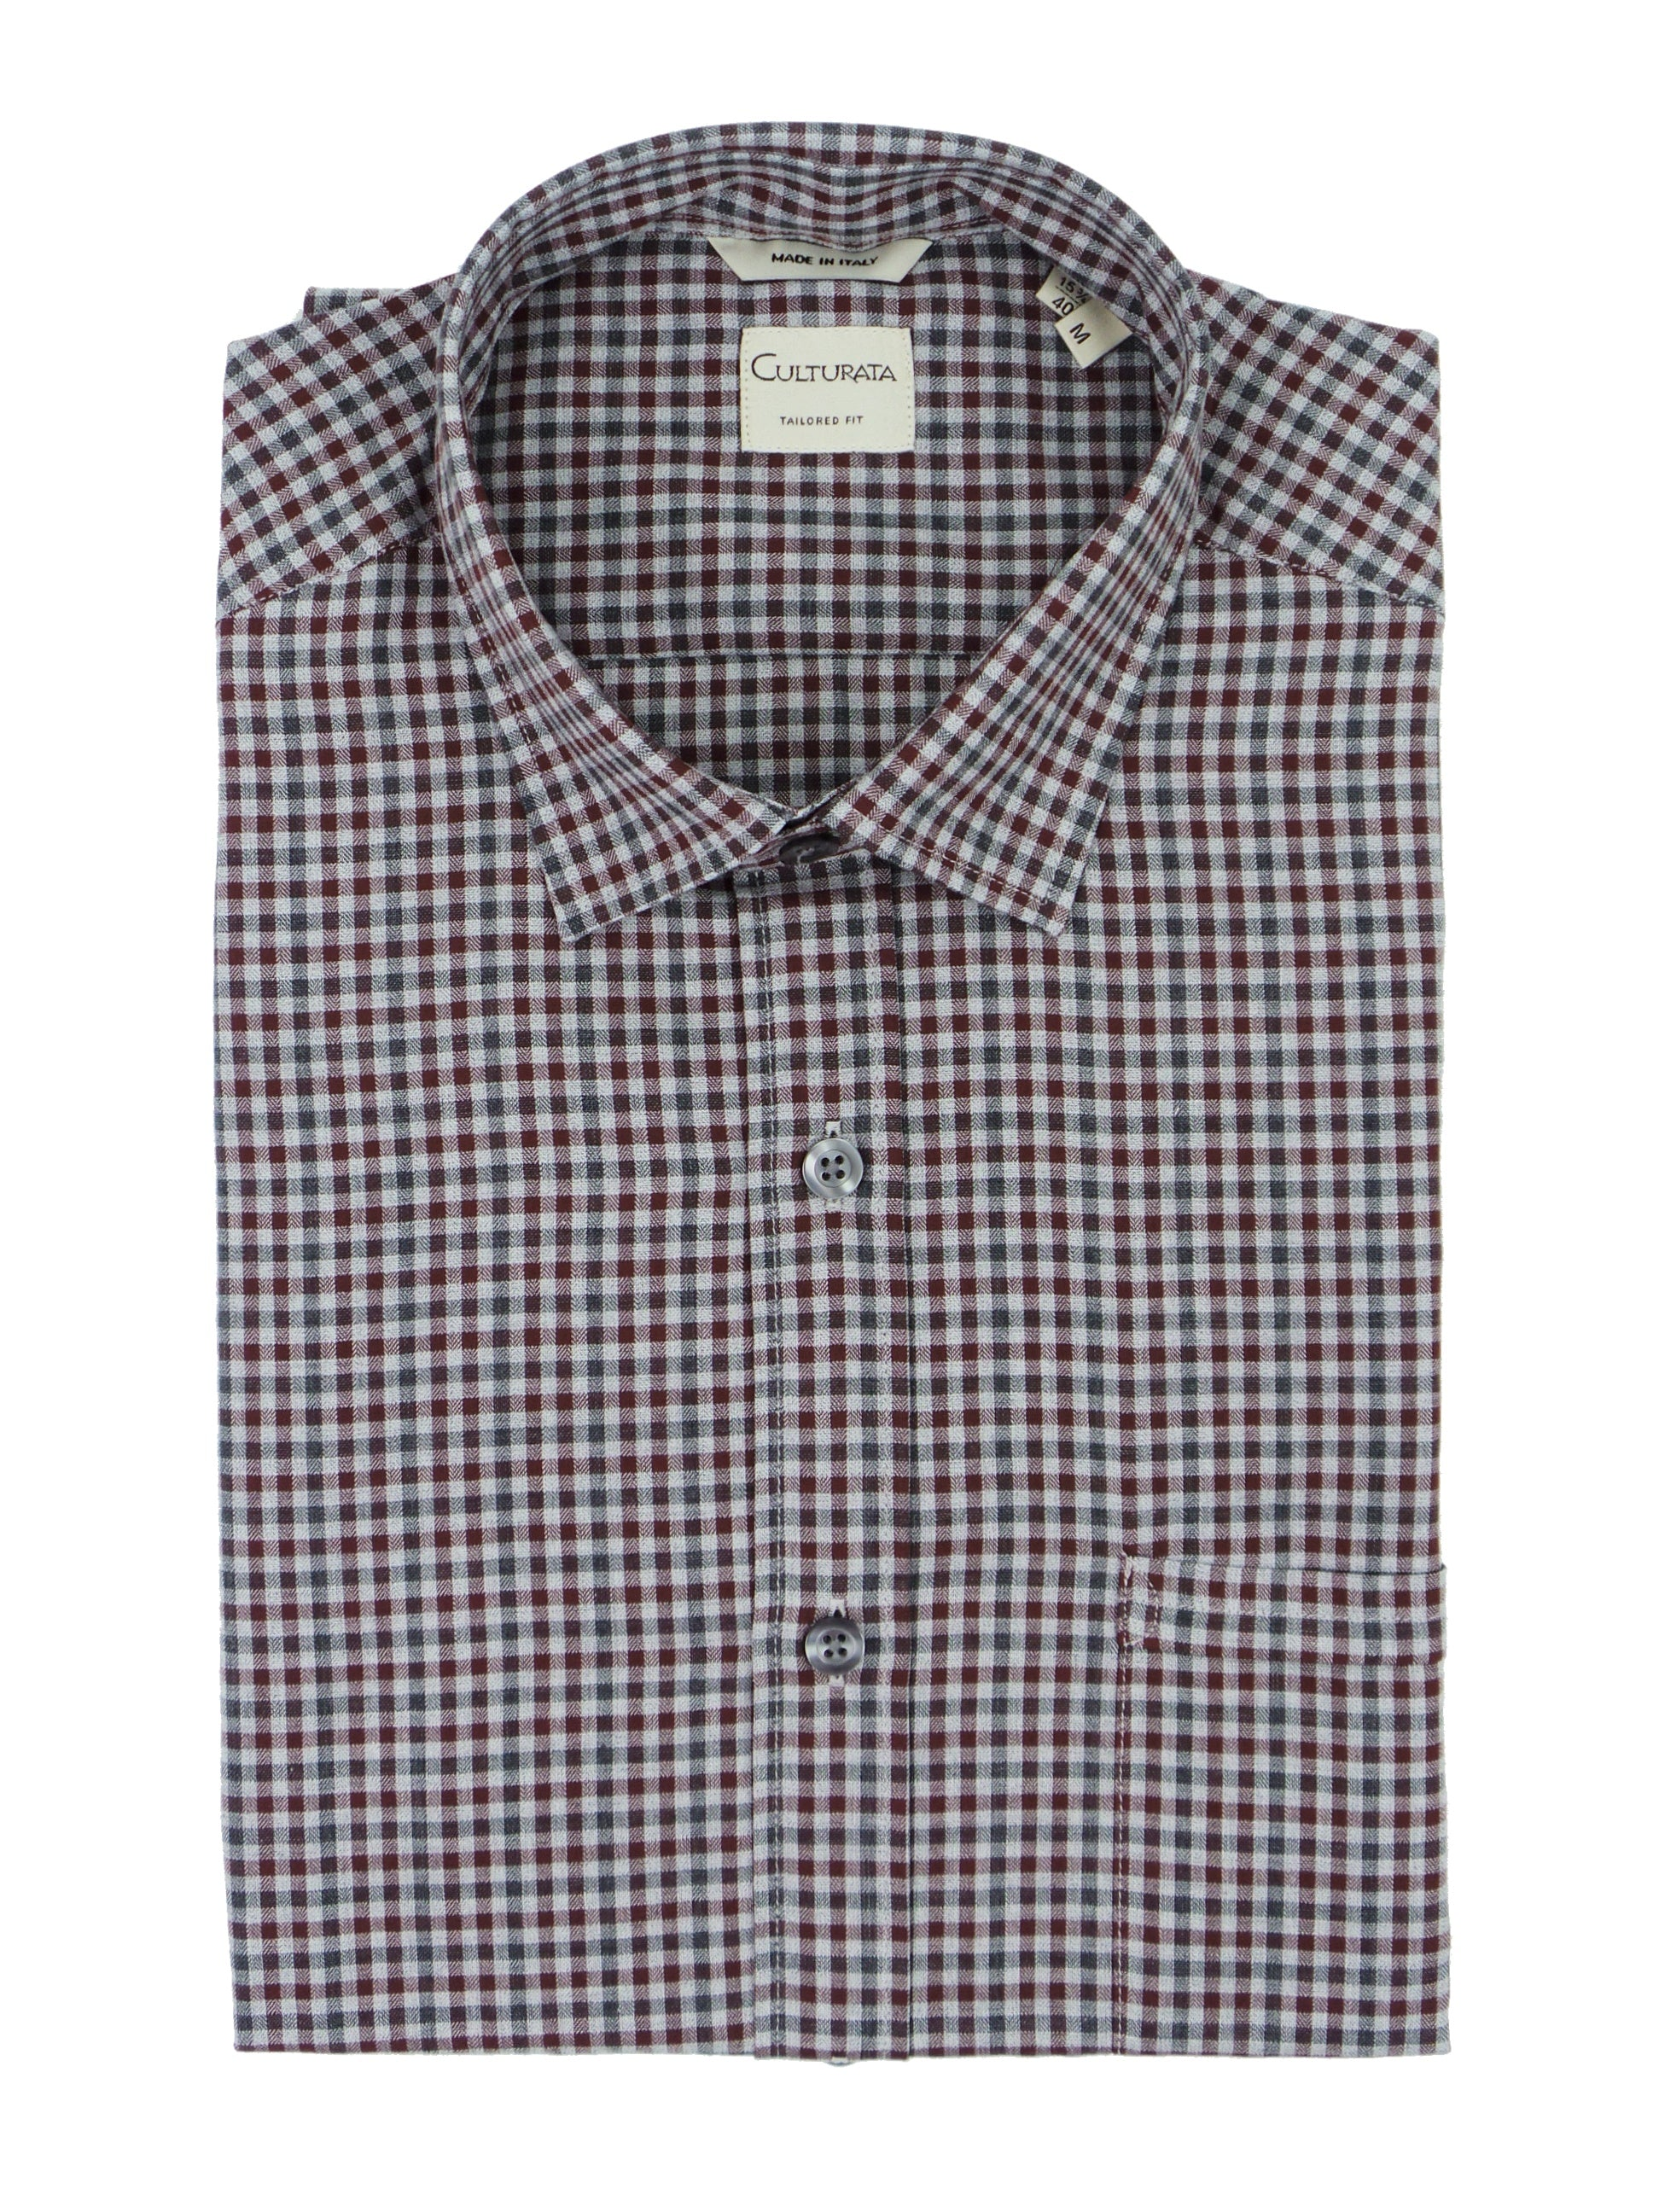 Culturata Soft Touch Modern Gingham Button Up Shirt